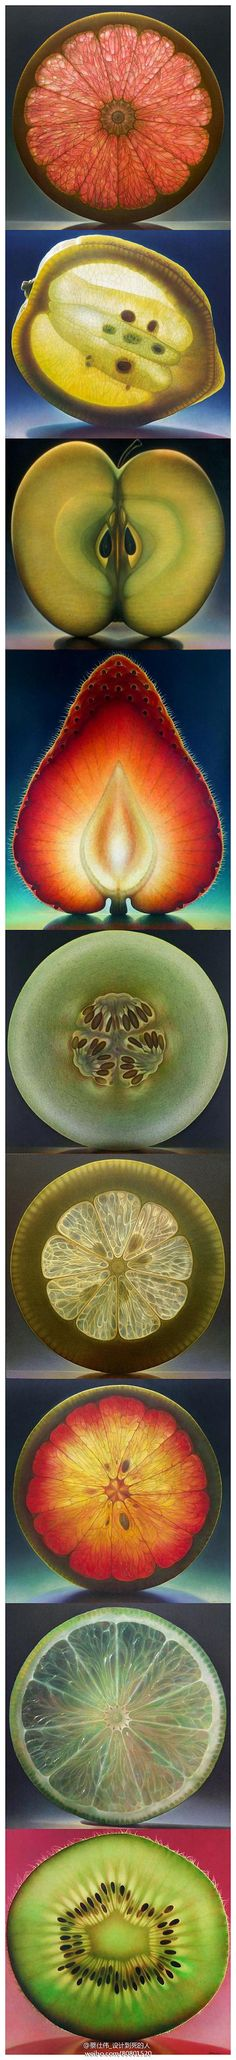 fruit cross section paintings by dennis wojtkiewicz.